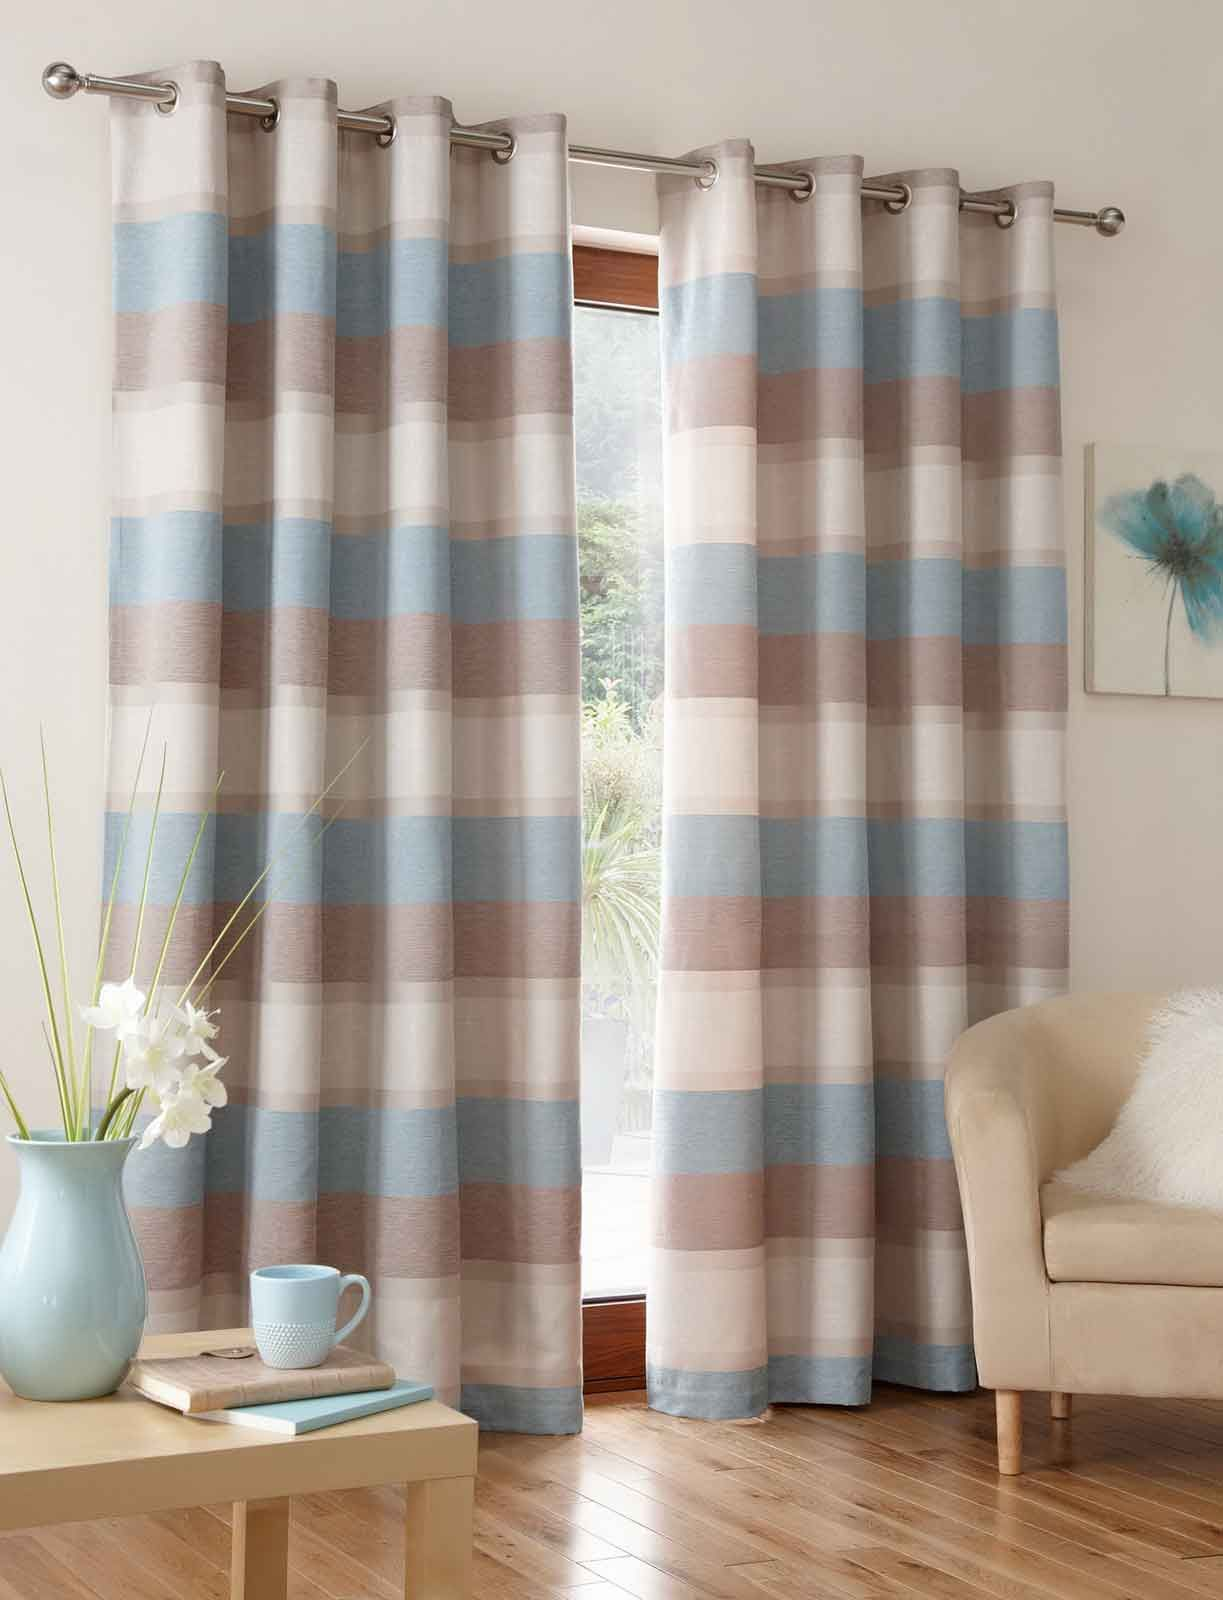 Blinds and curtains combination bedroom - Marvellous Blue Brown Bedroom Design Decobizzbrown Curtains Designs High Definition And Brown Curtains Designs Label